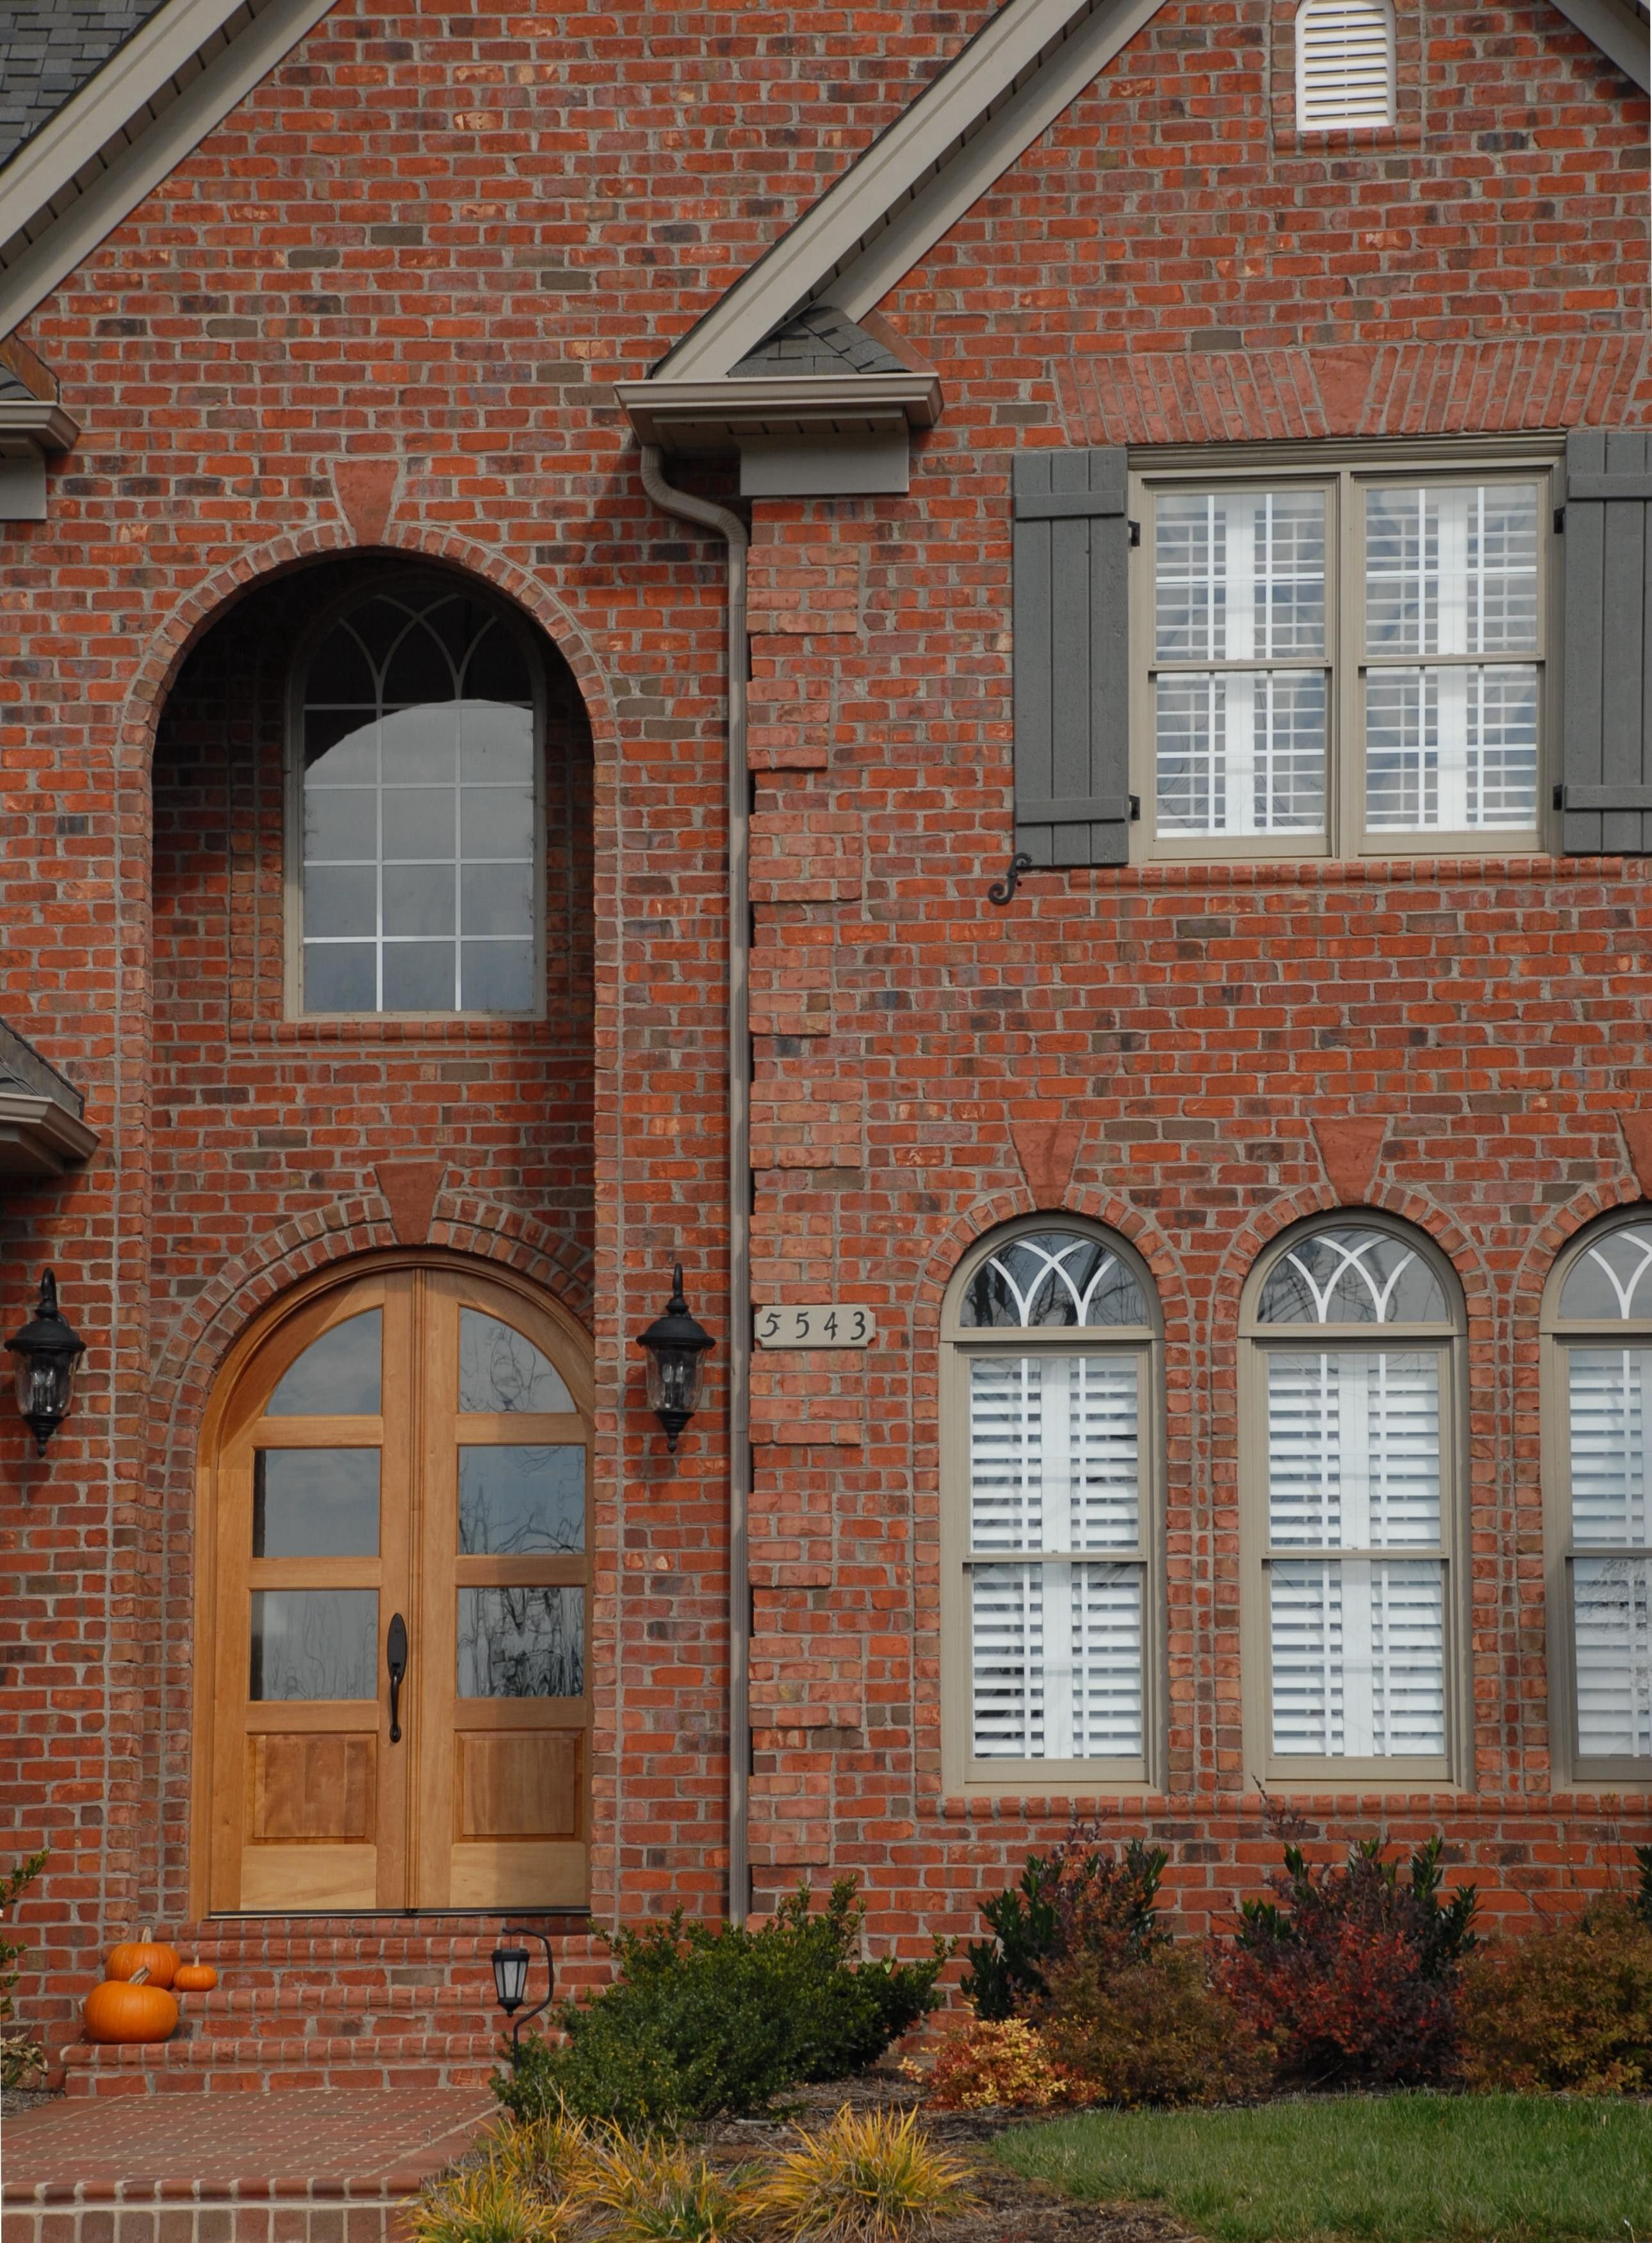 From Semicircular Arches And Keystones To Windows Framed